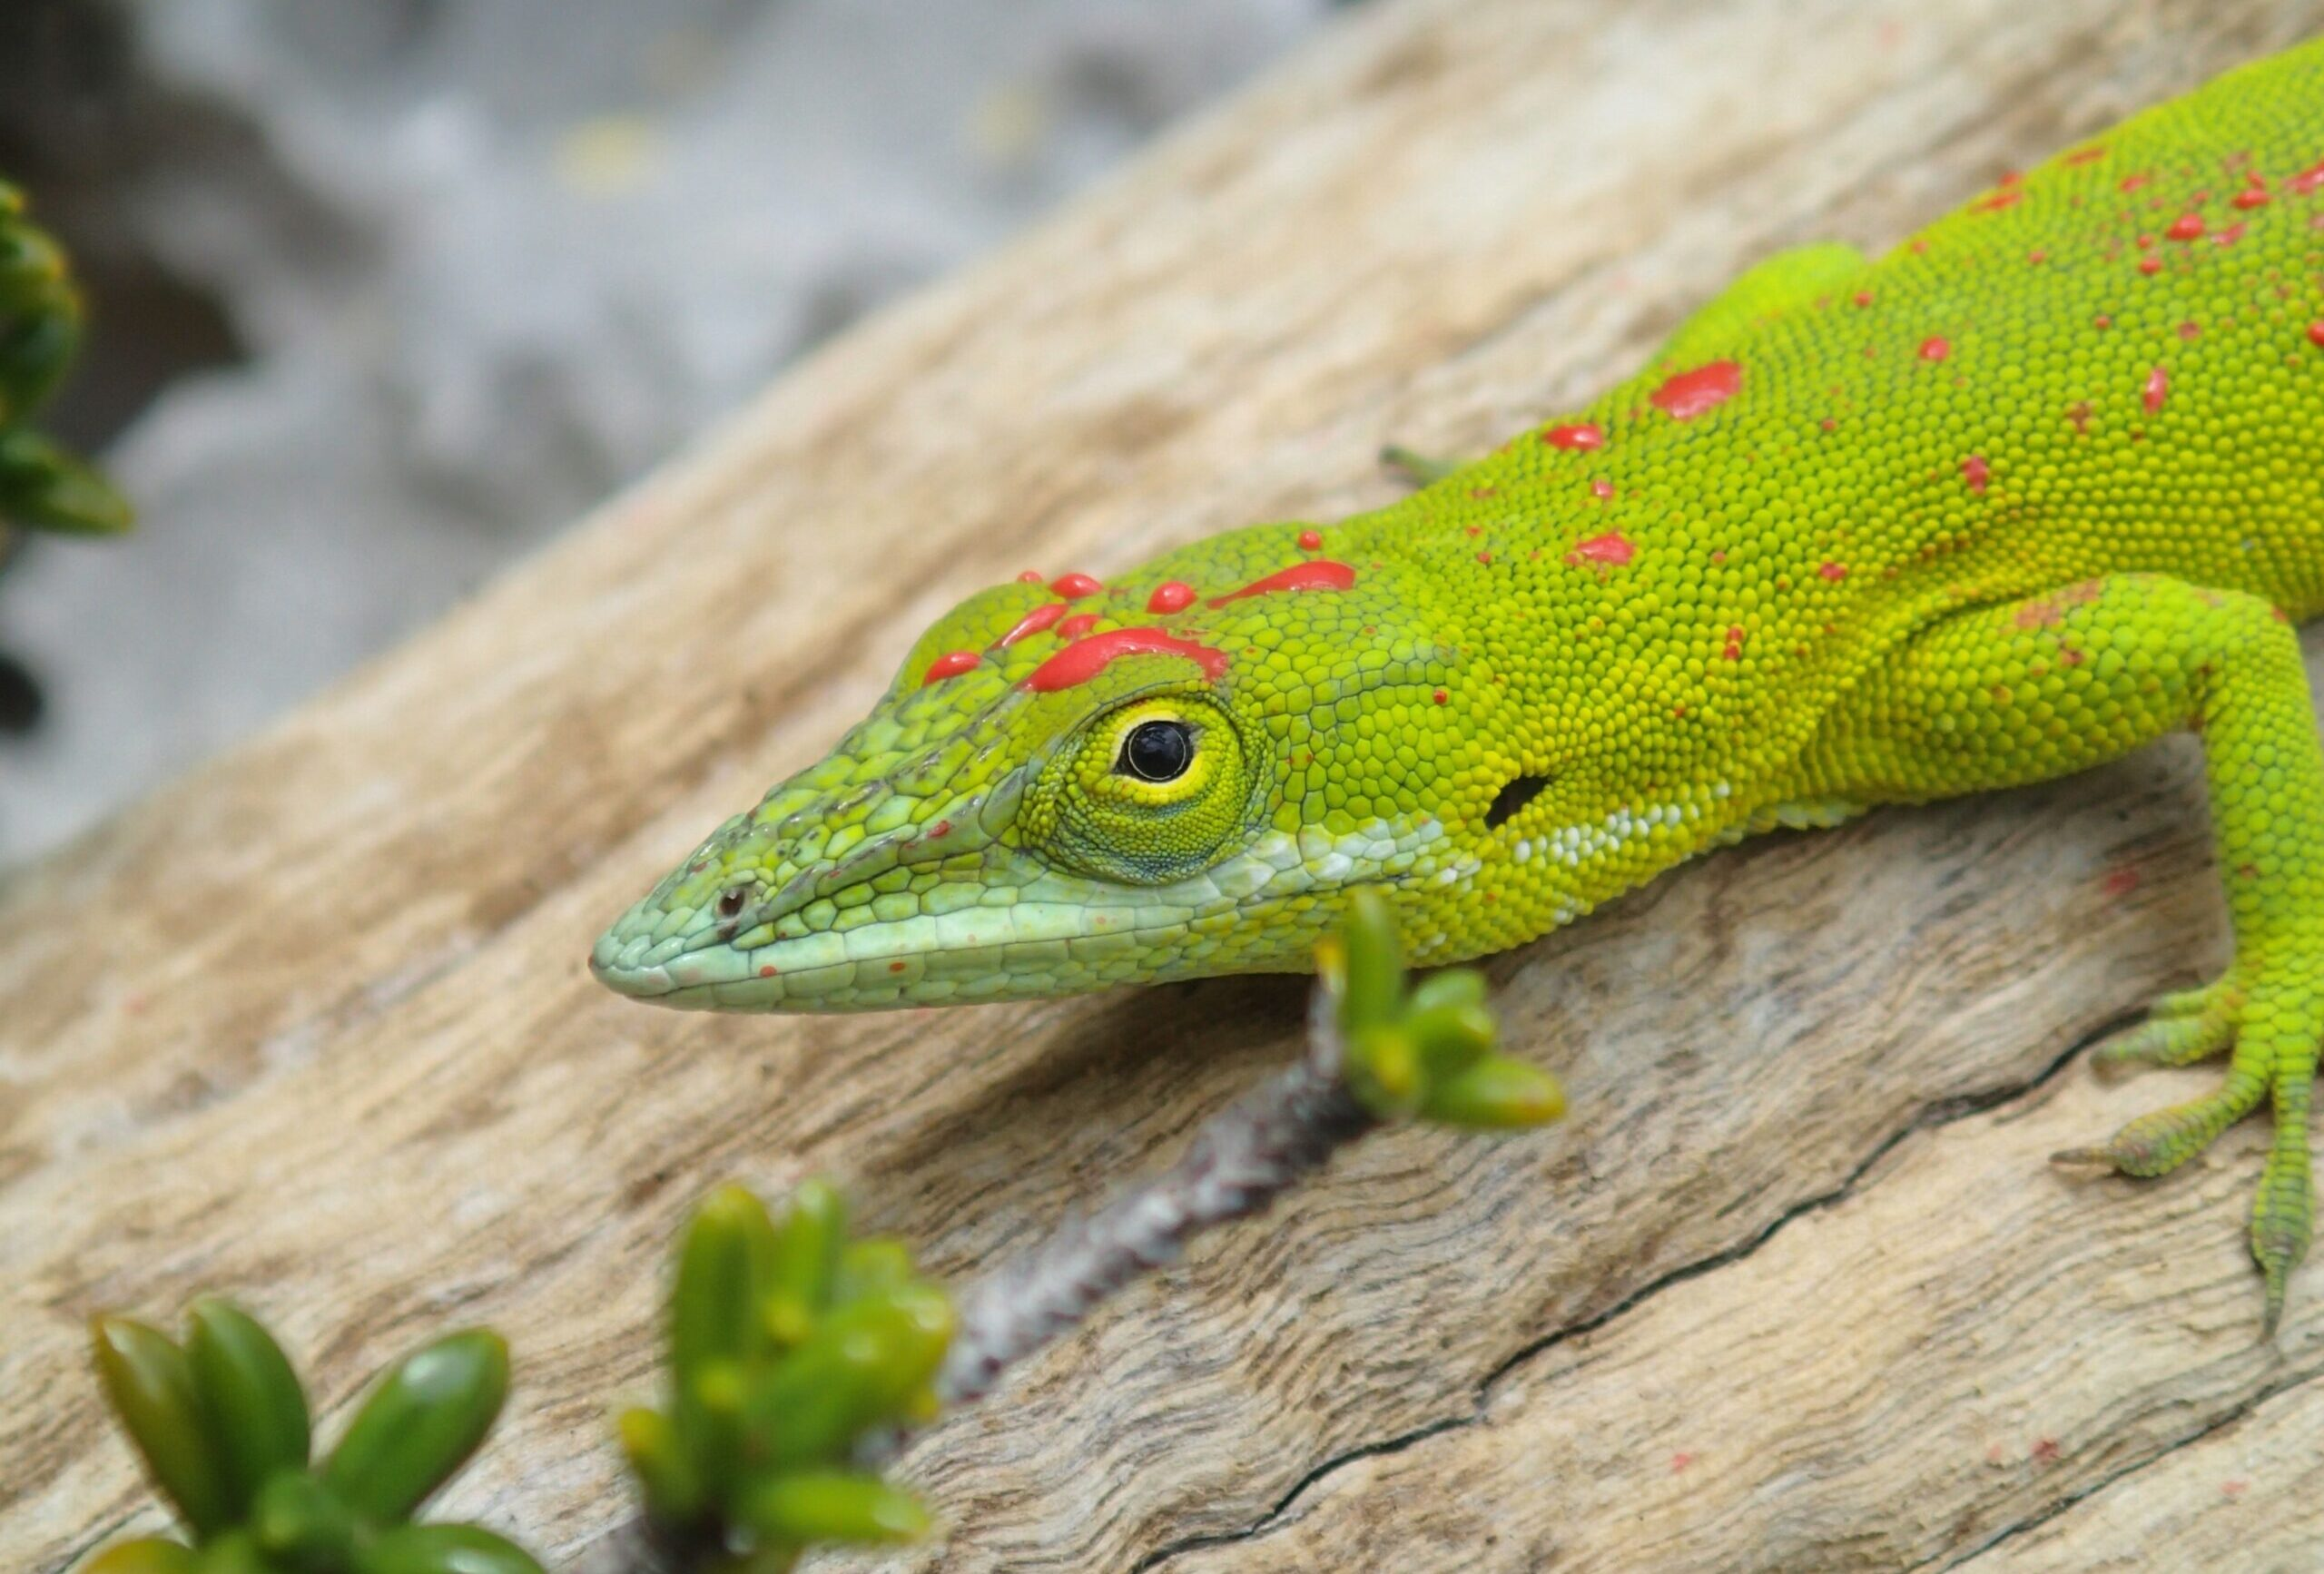 Green anole lizard marked with red paint on head